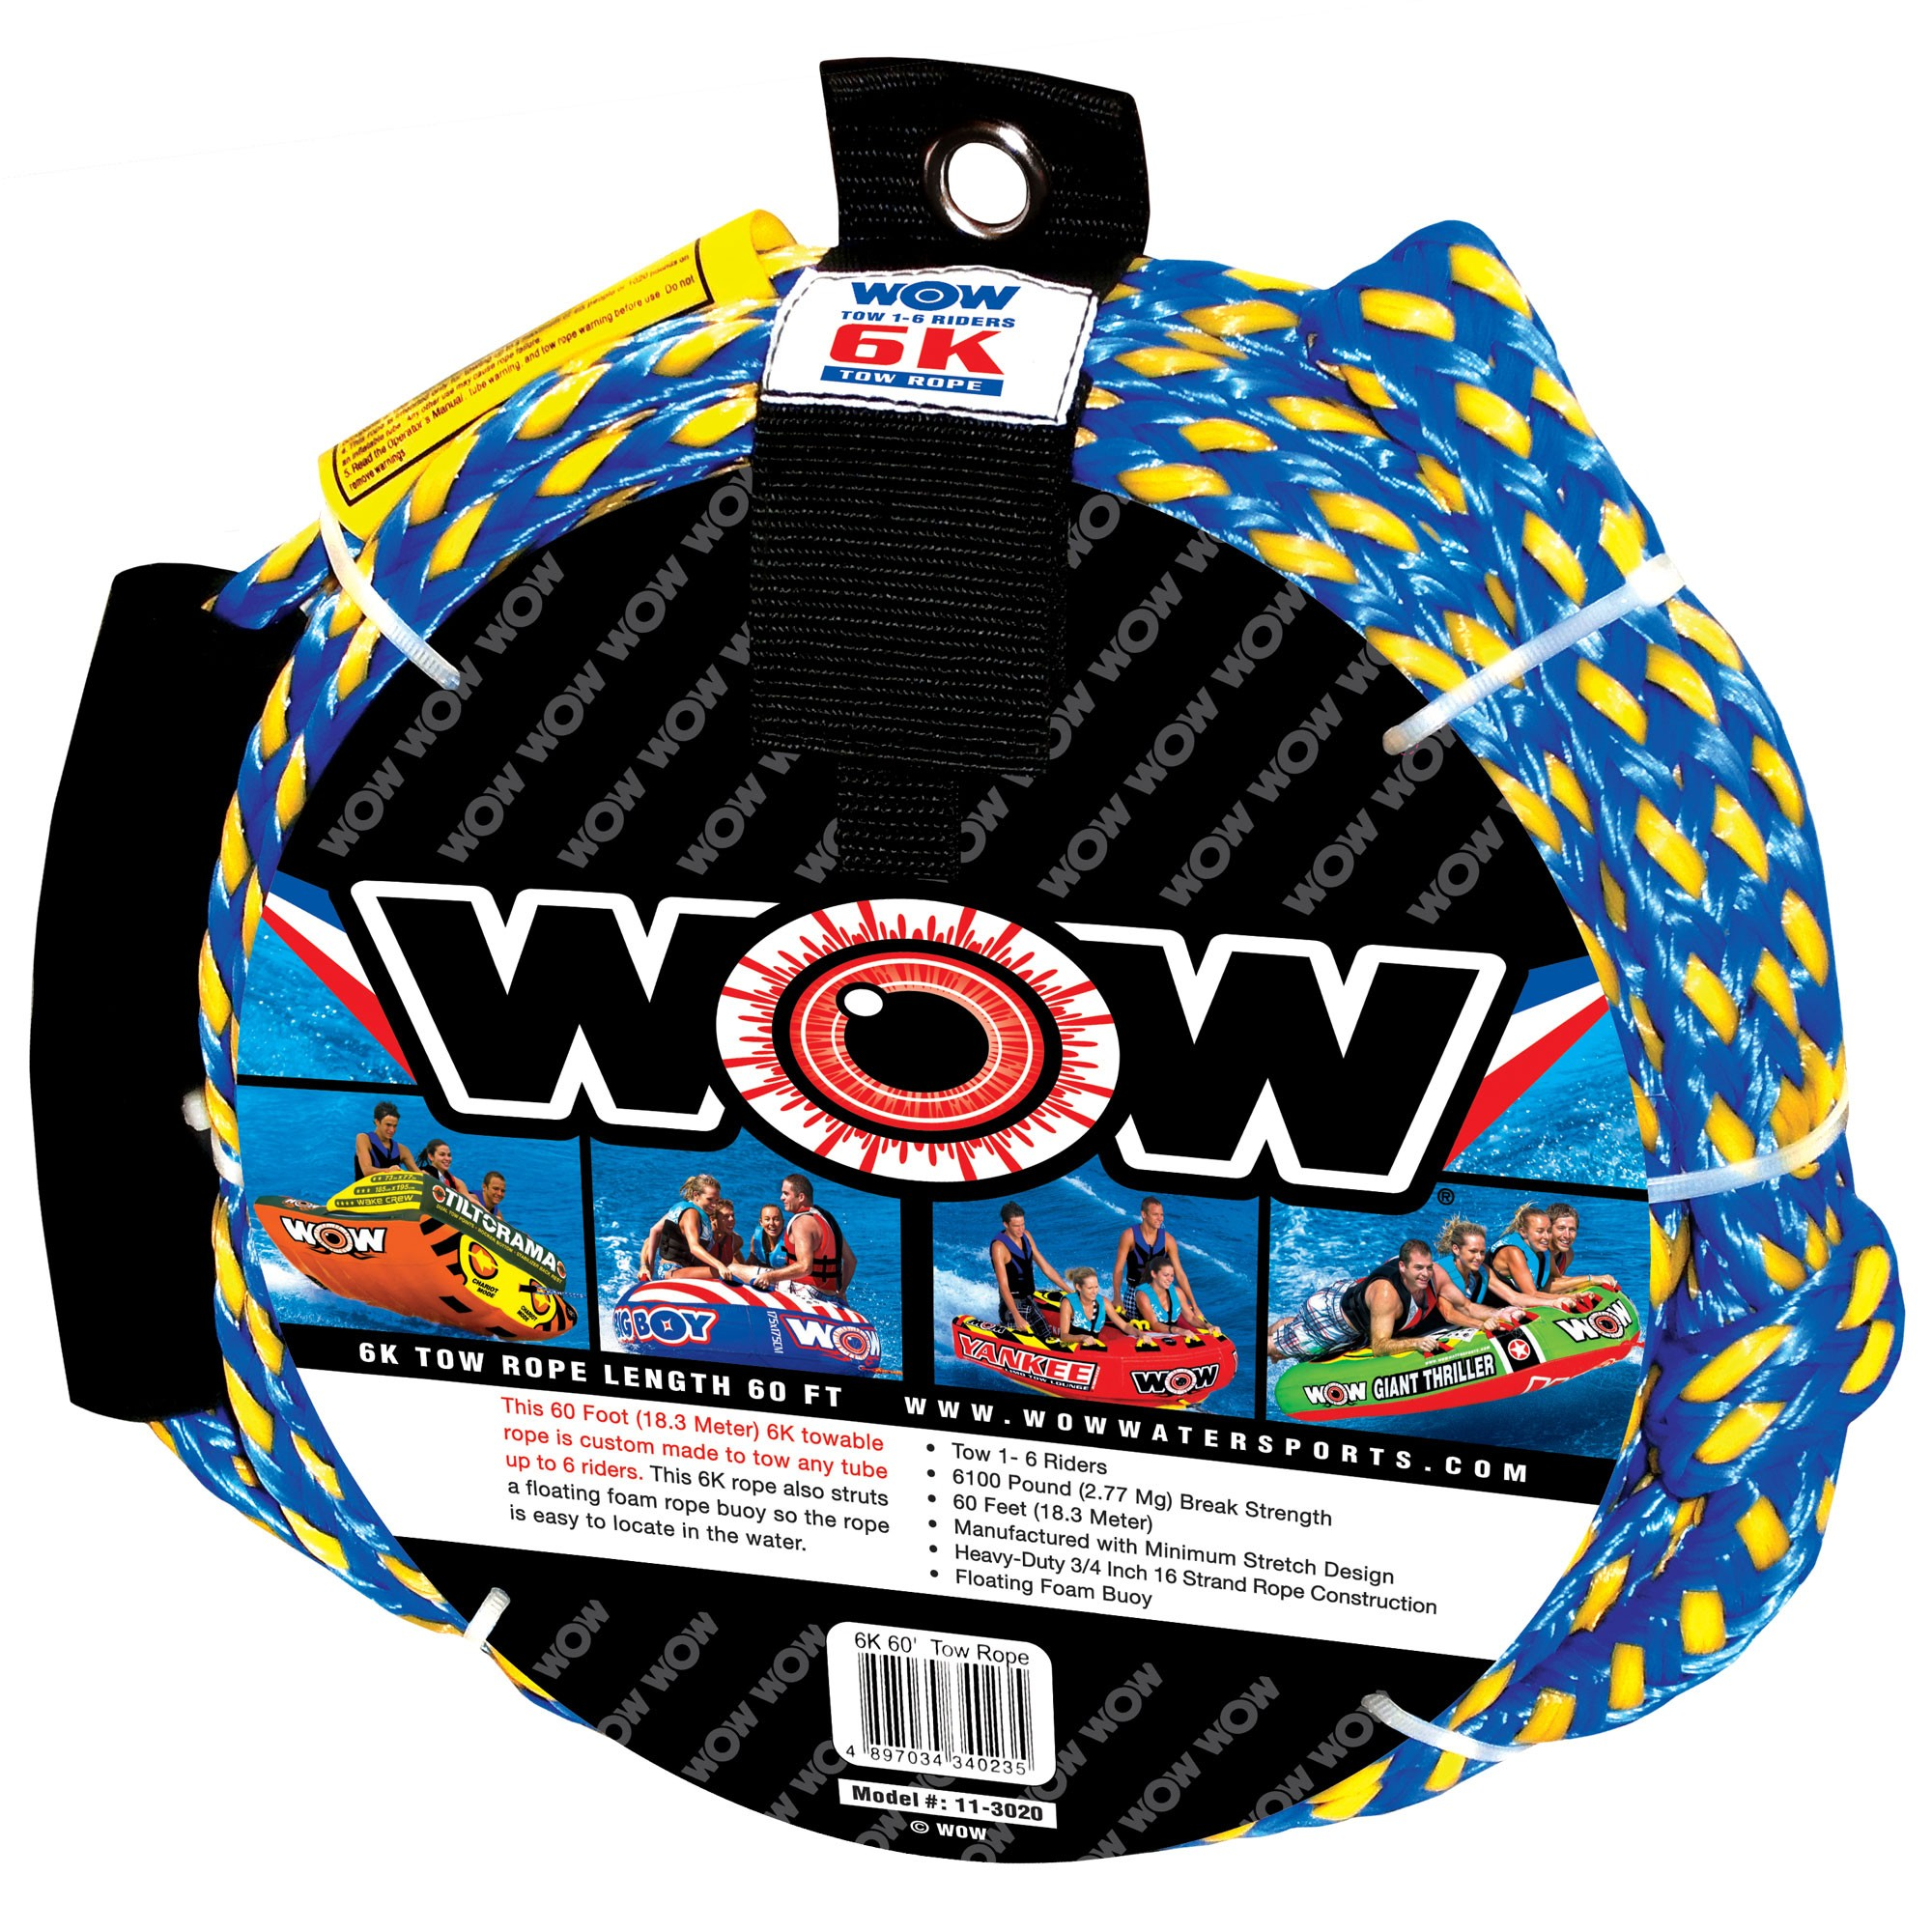 6K 60ft Tow Rope